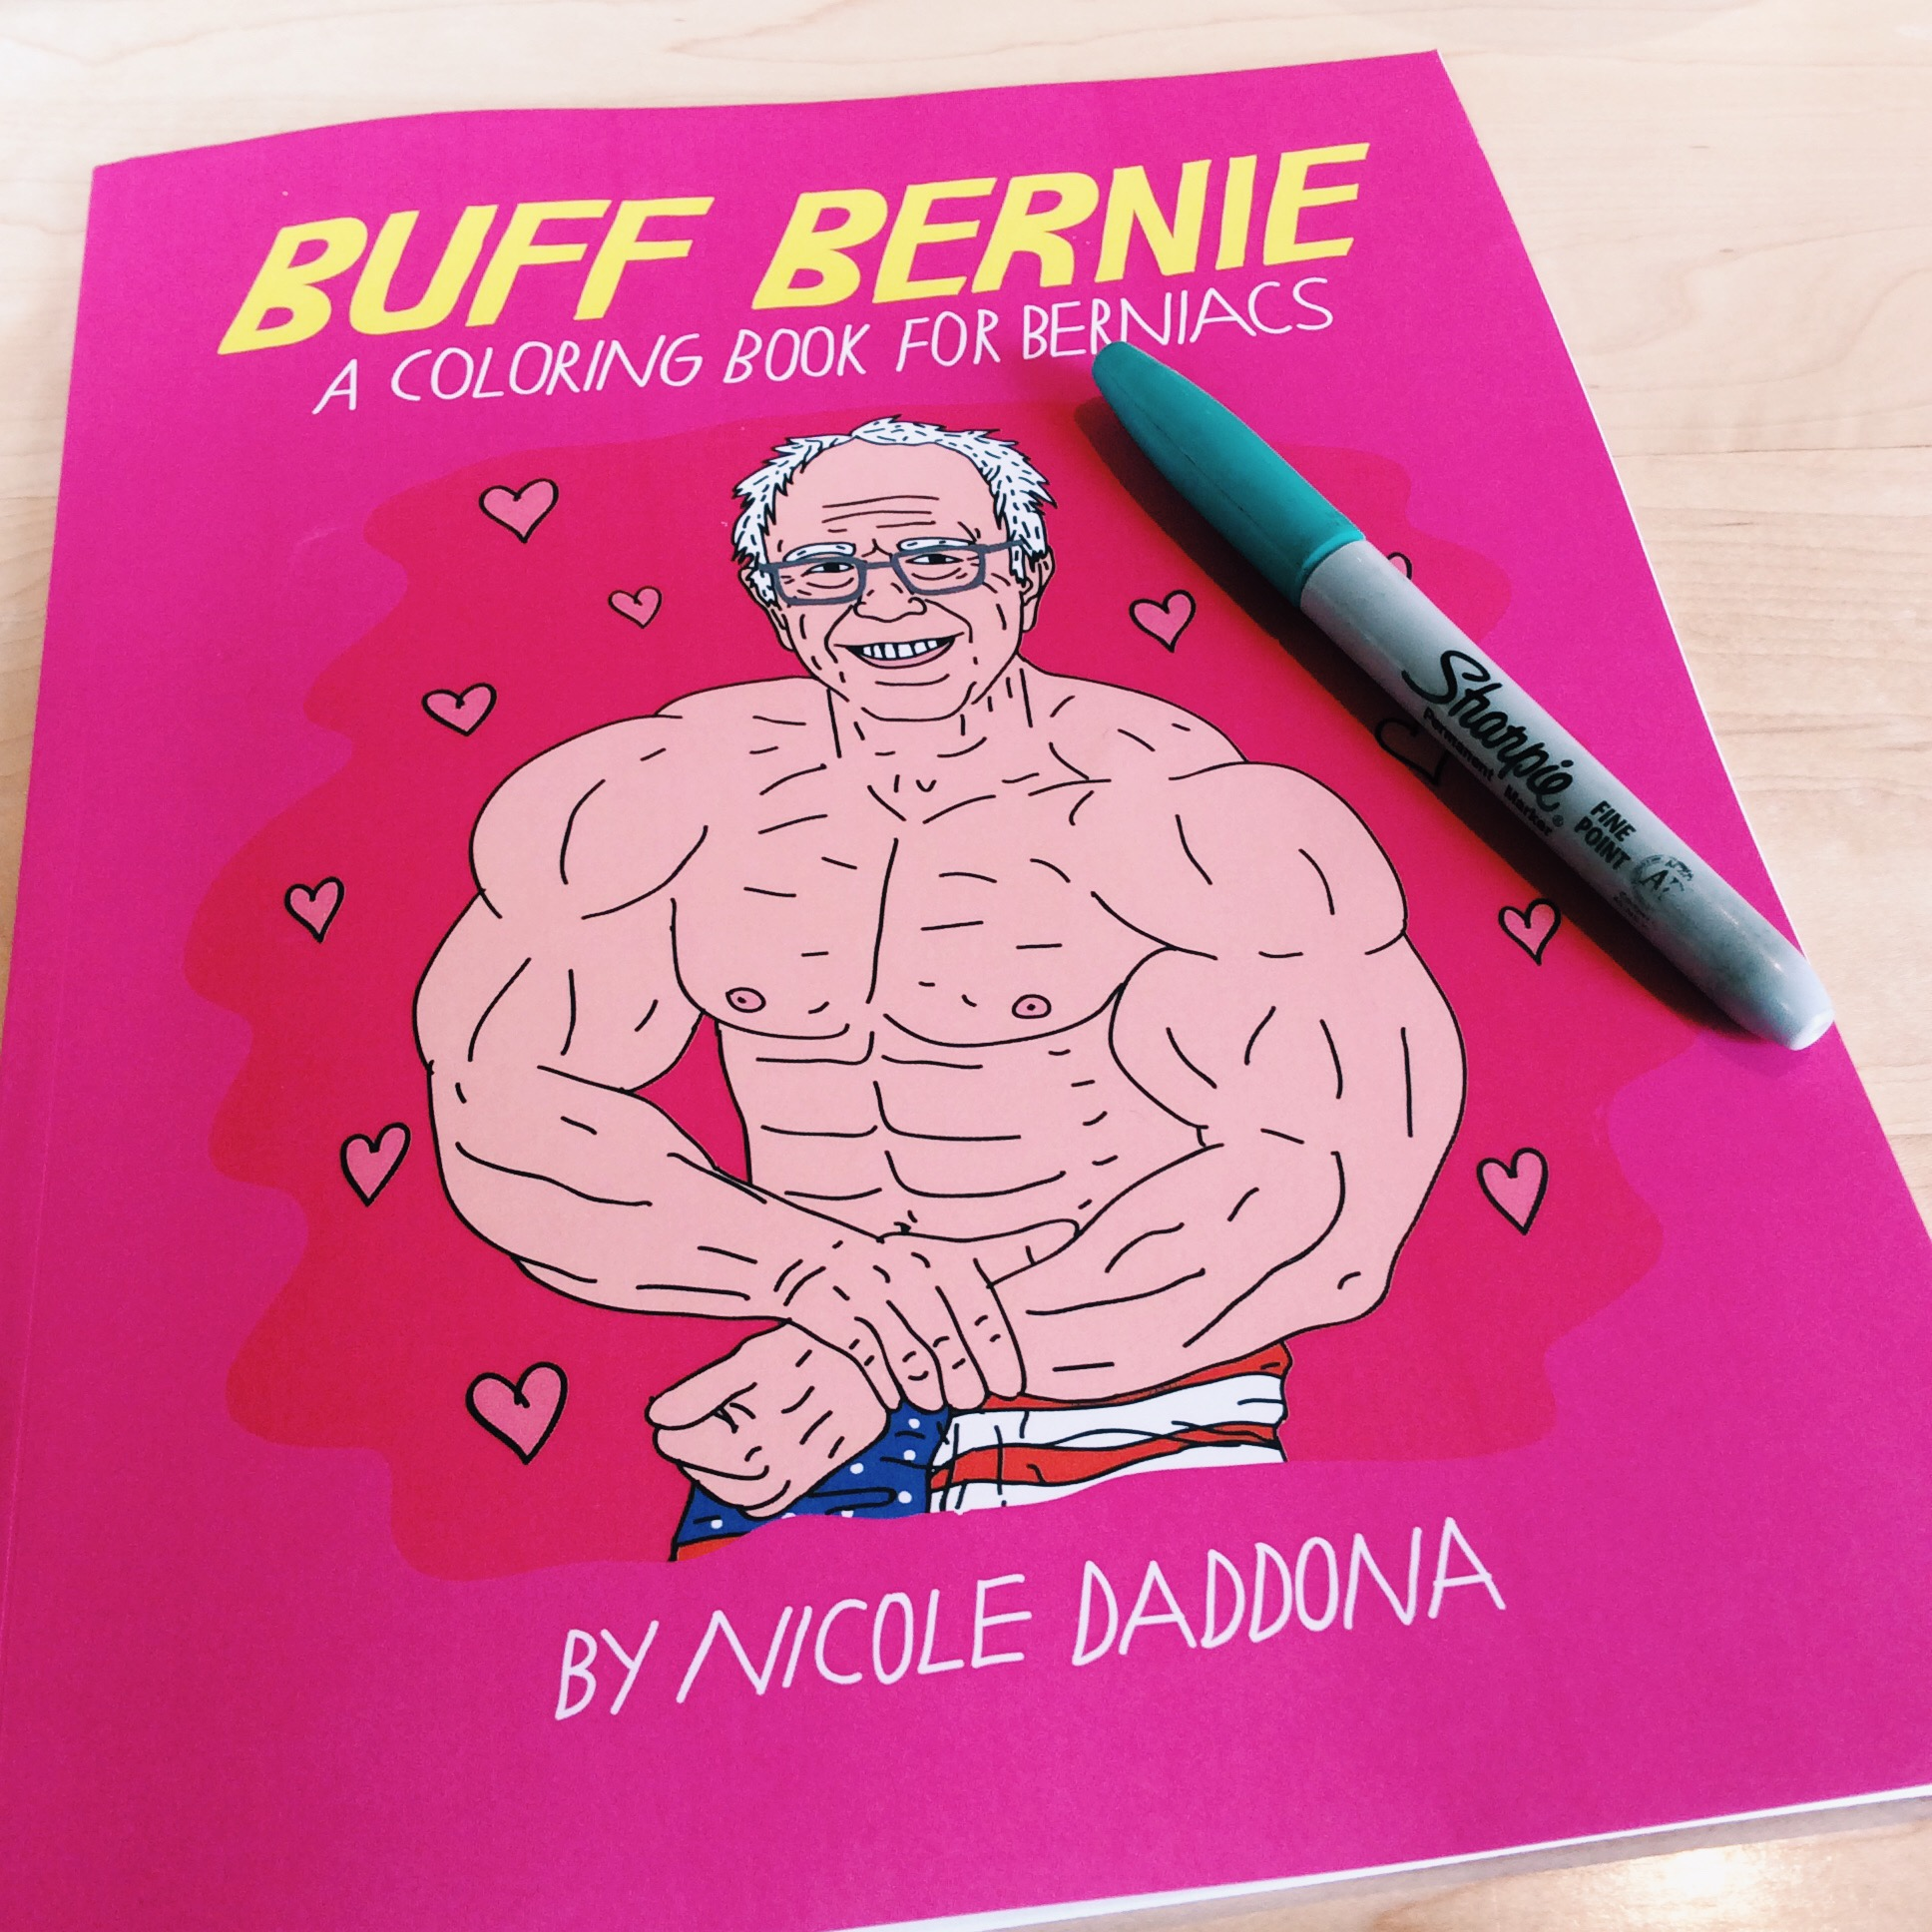 There is now a buff Bernie Sanders coloring book. Just FYI.